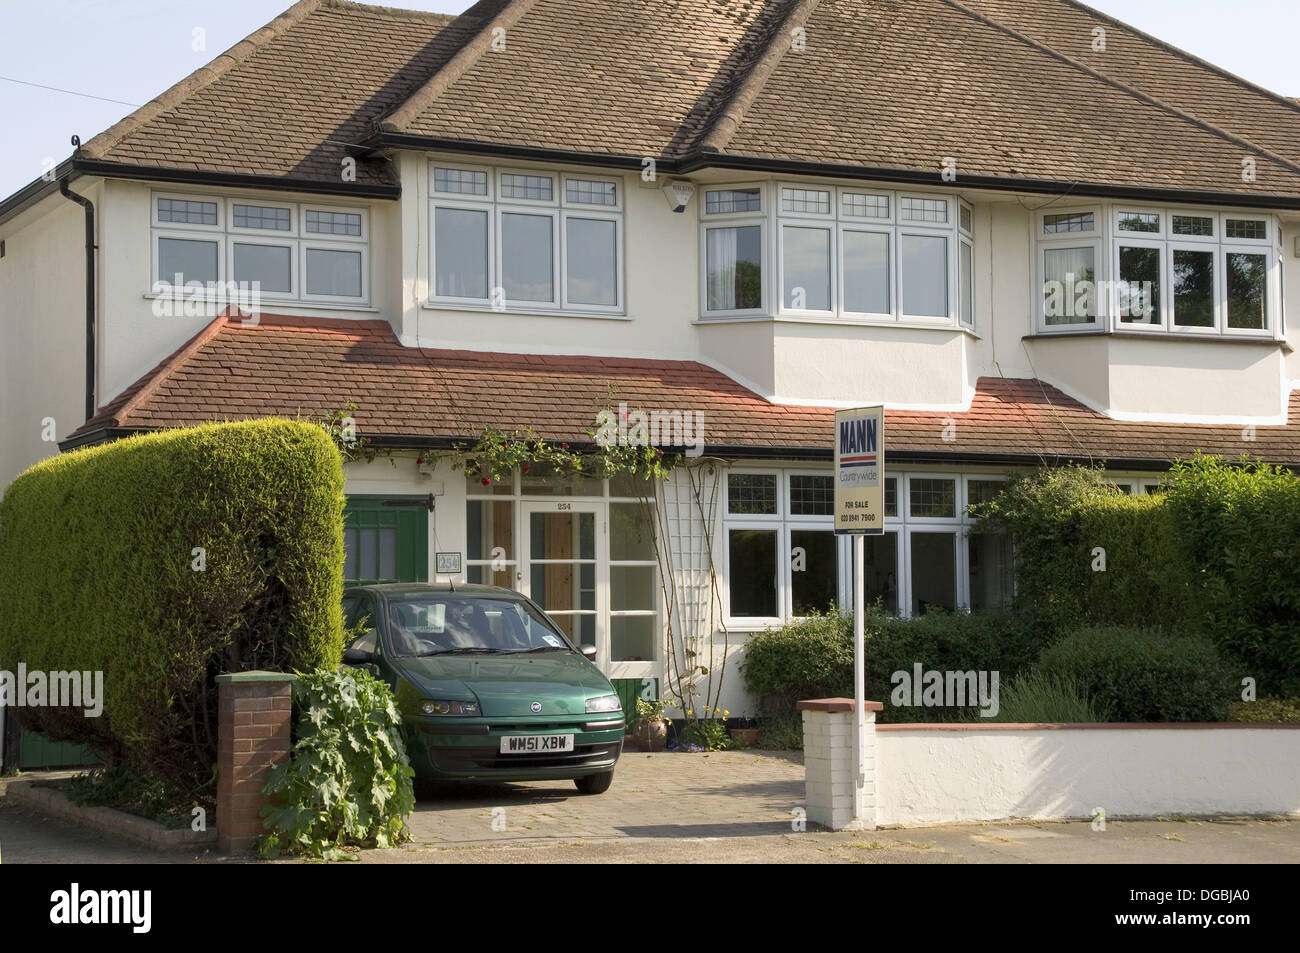 Awesome England London Surrey Semi Detatched House For Sale Stock Download Free Architecture Designs Rallybritishbridgeorg